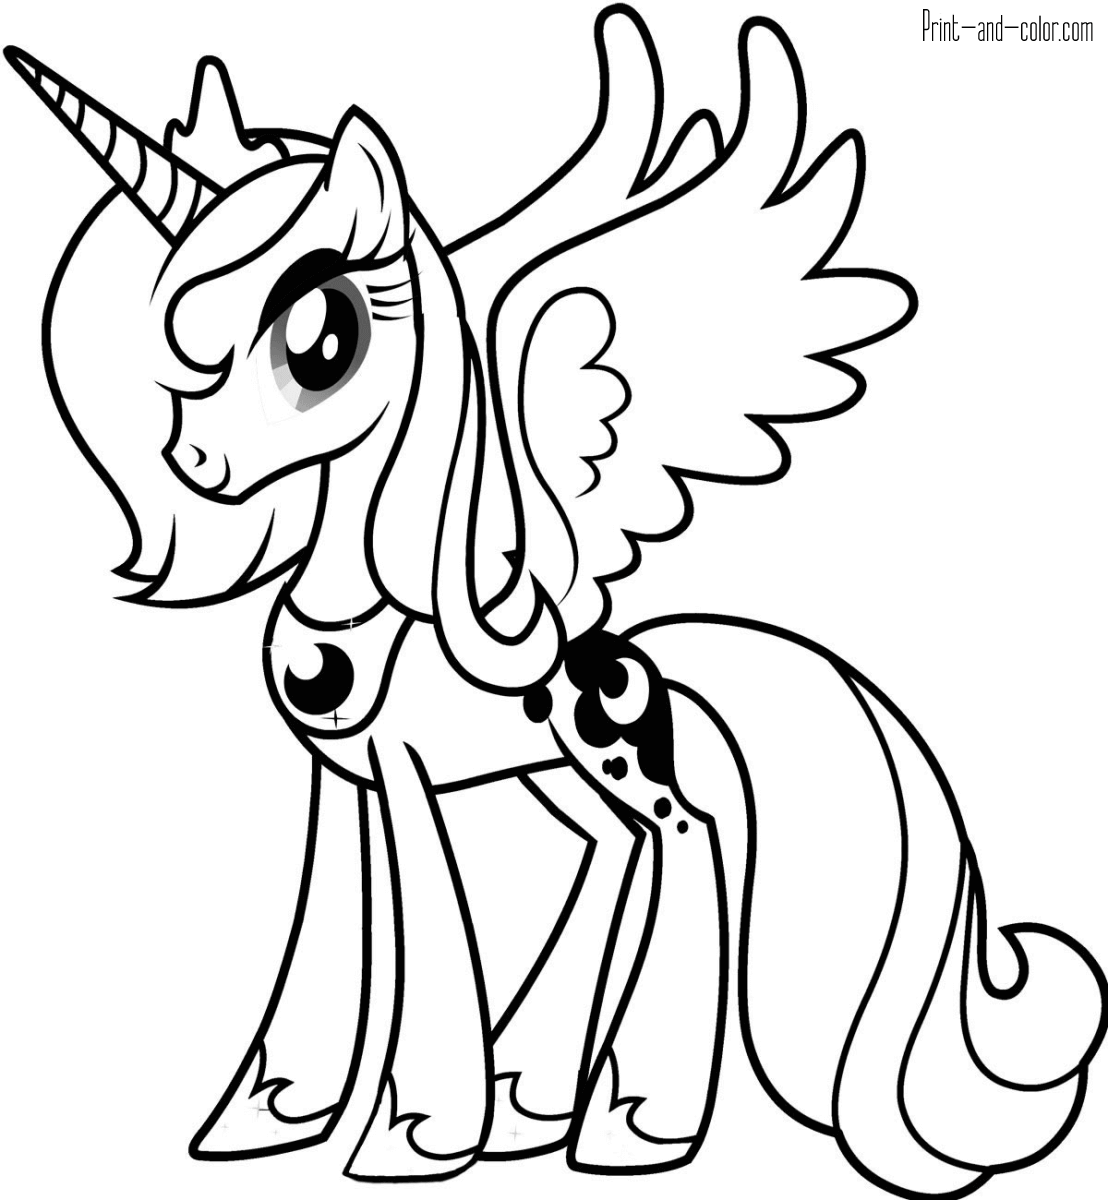 pony coloring pictures my little pony coloring pages print and colorcom pictures pony coloring